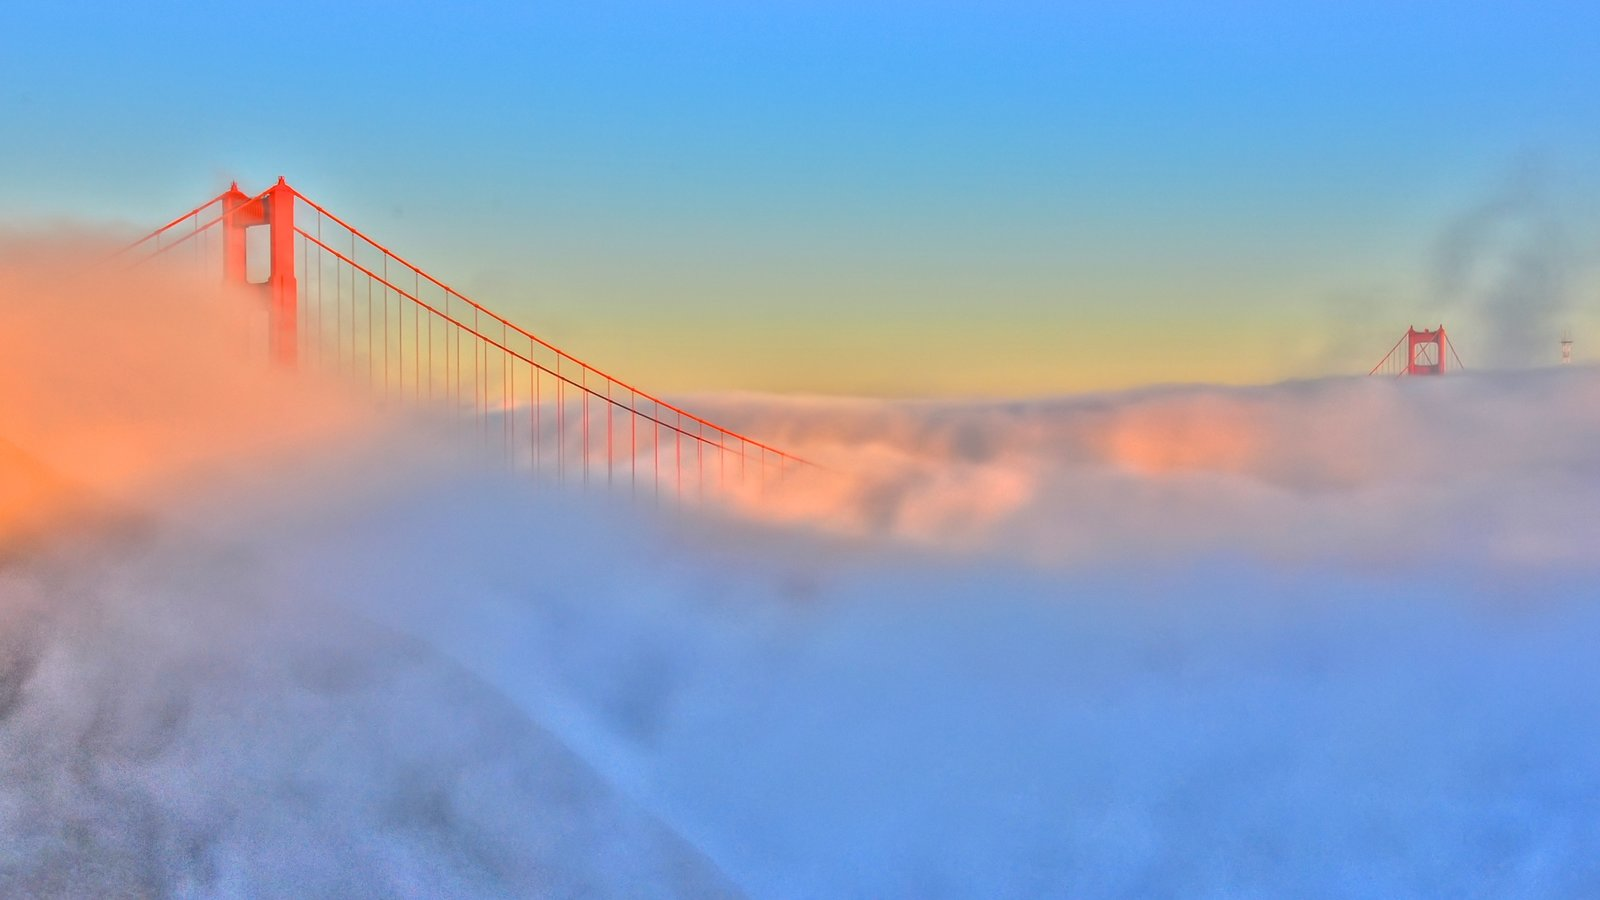 Golden Gate Bridge which includes a bridge and mist or fog